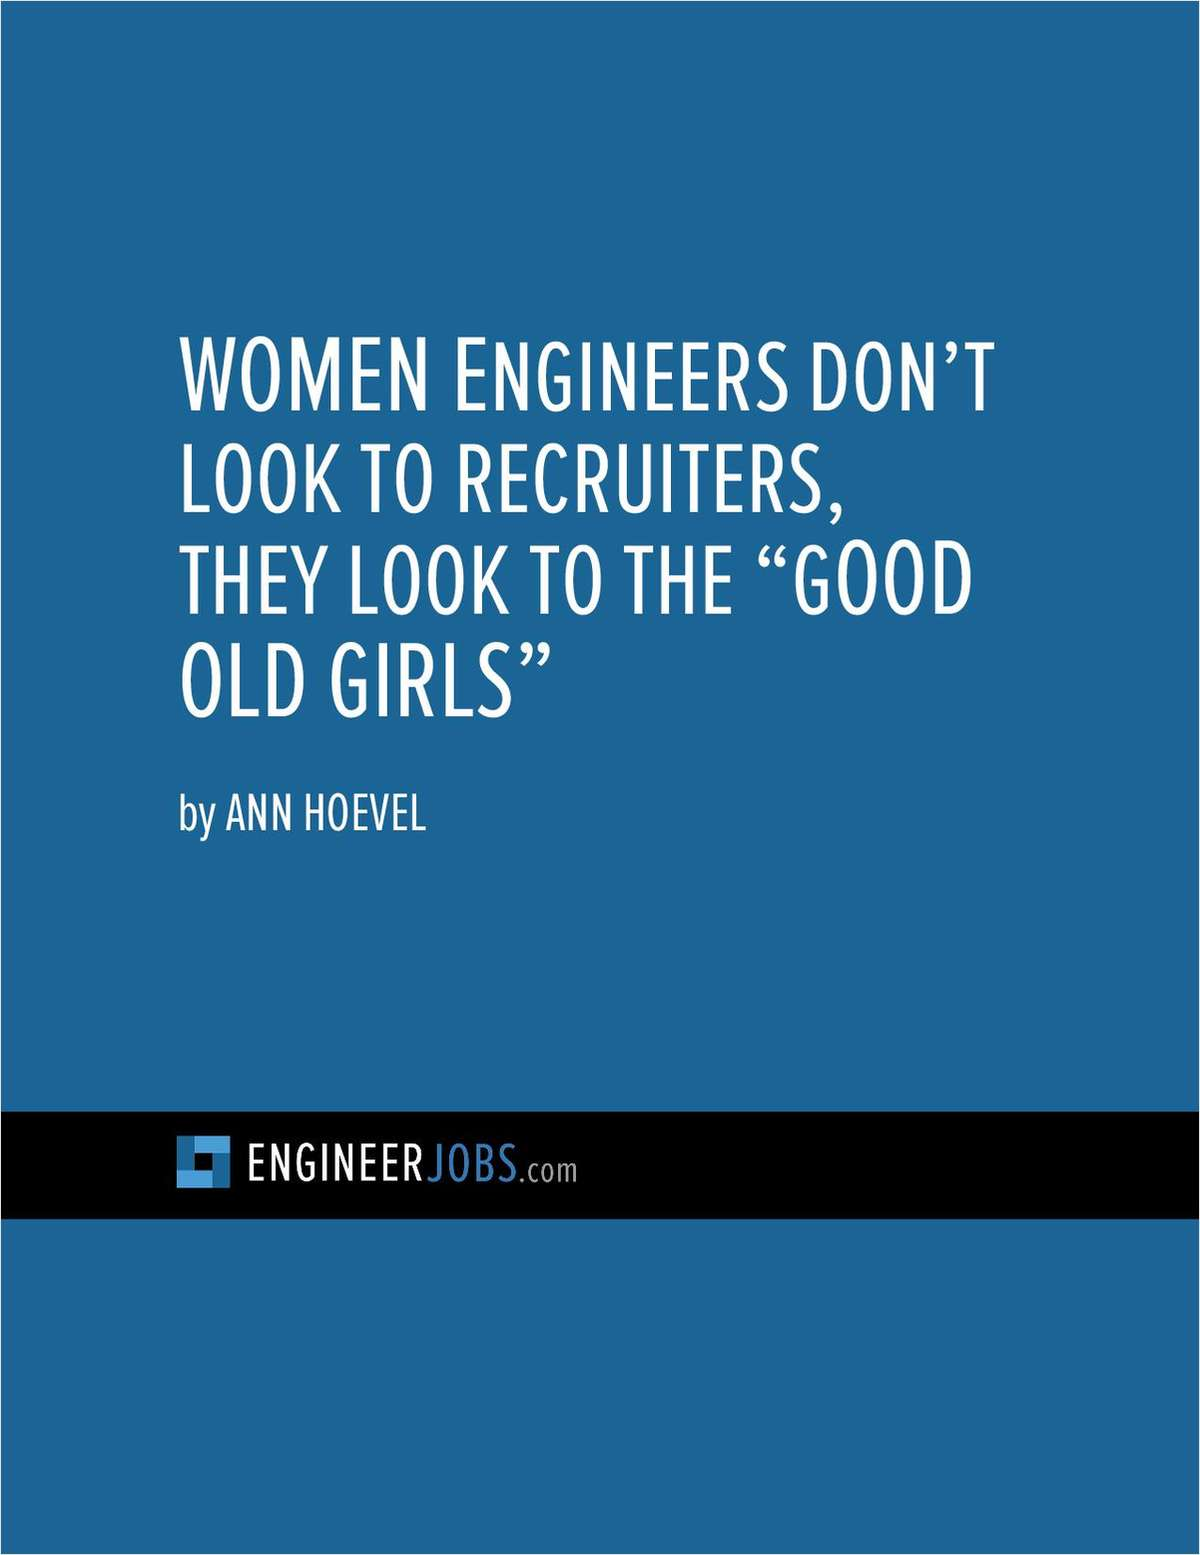 Women Engineers Say 'No Thanks' To Recruiters